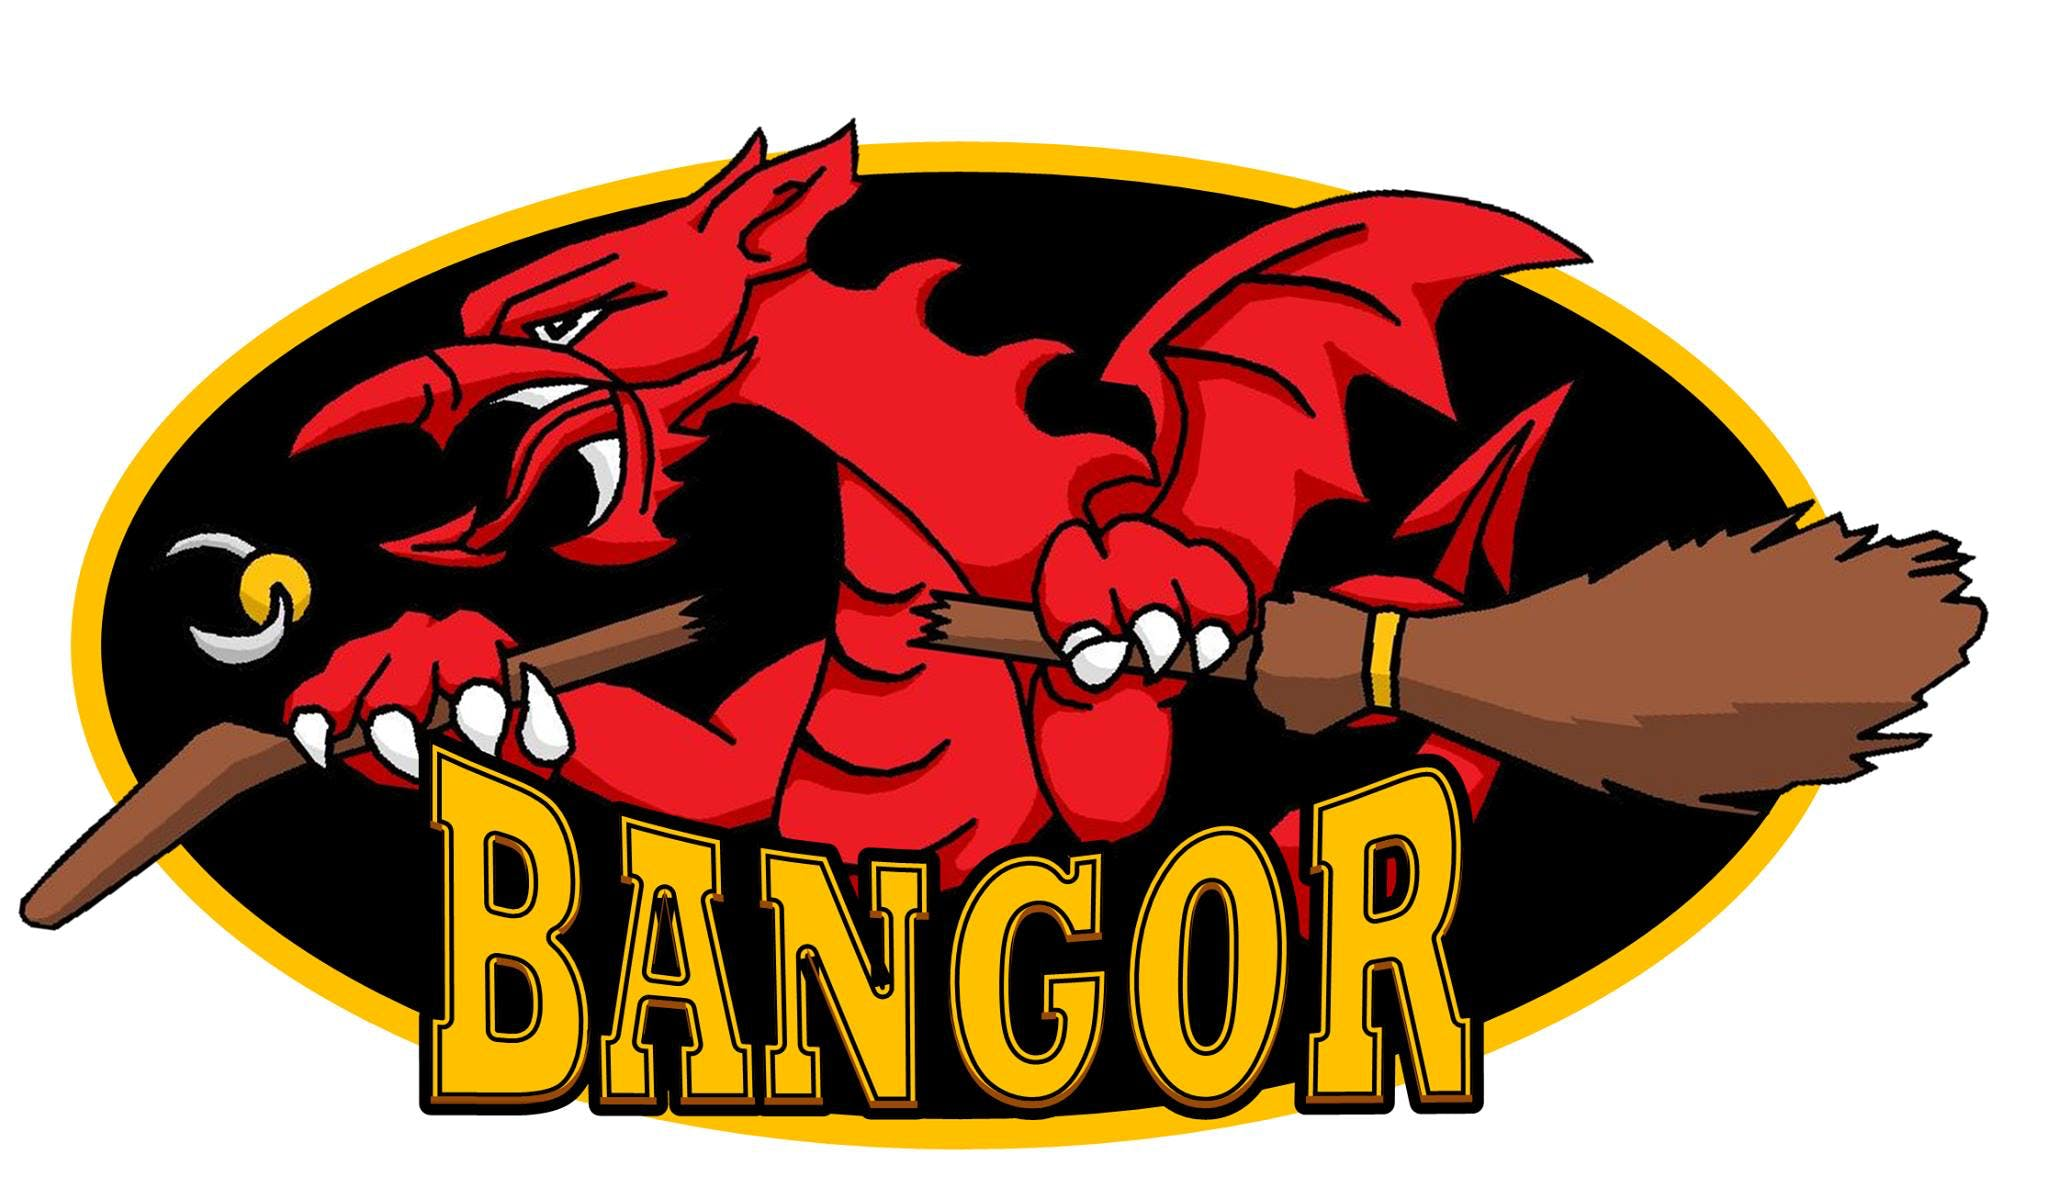 Bangor Broken Broomsticks logo